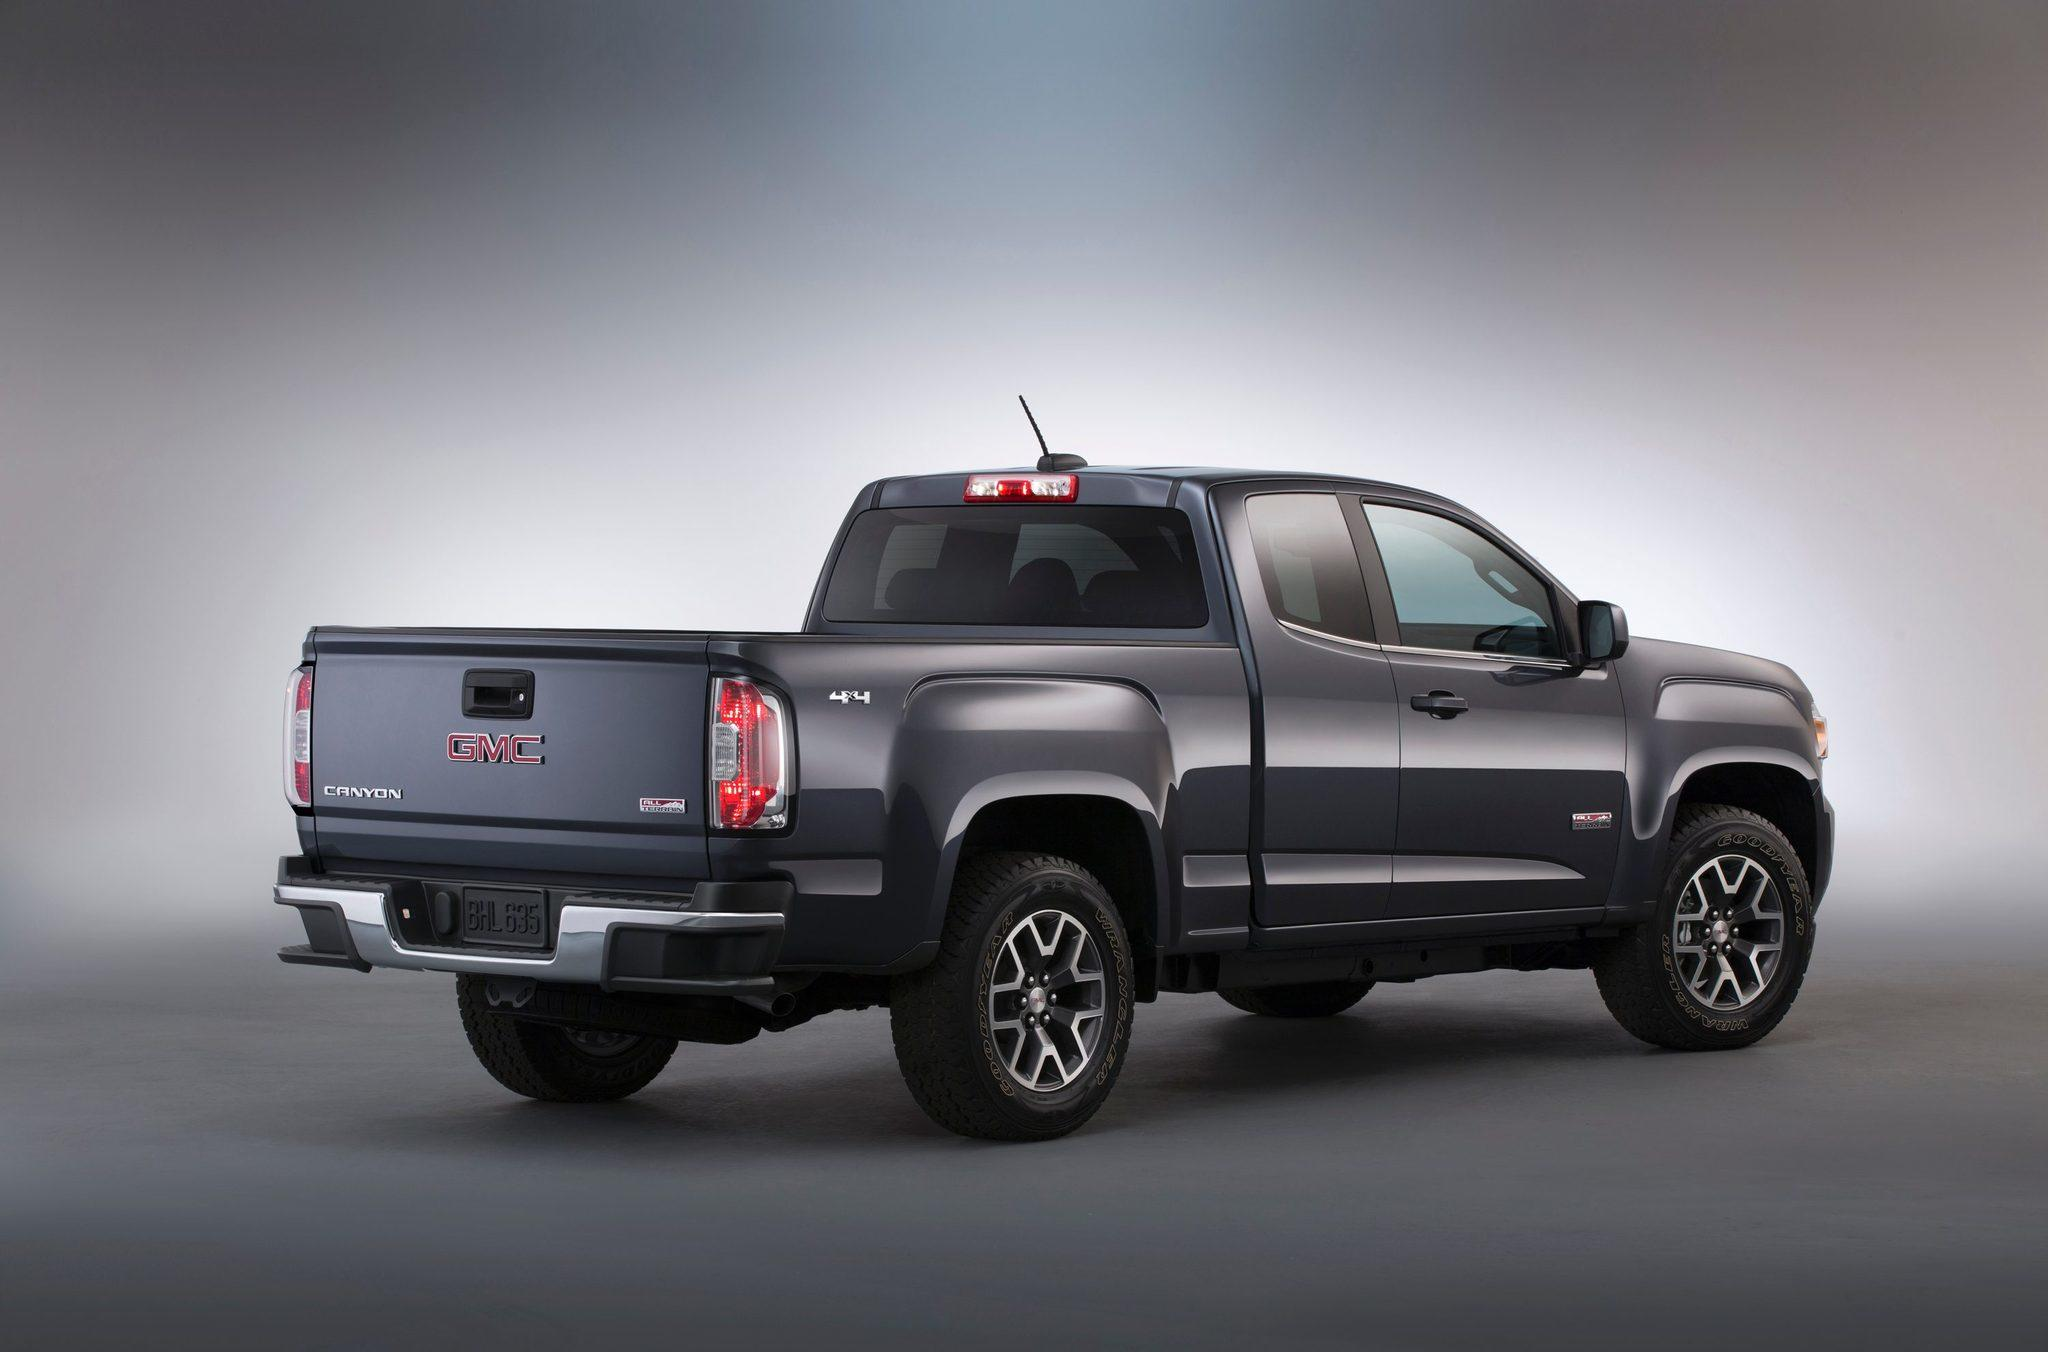 detroit auto show gmc debuts new 2015 canyon mid size truck latimes. Black Bedroom Furniture Sets. Home Design Ideas